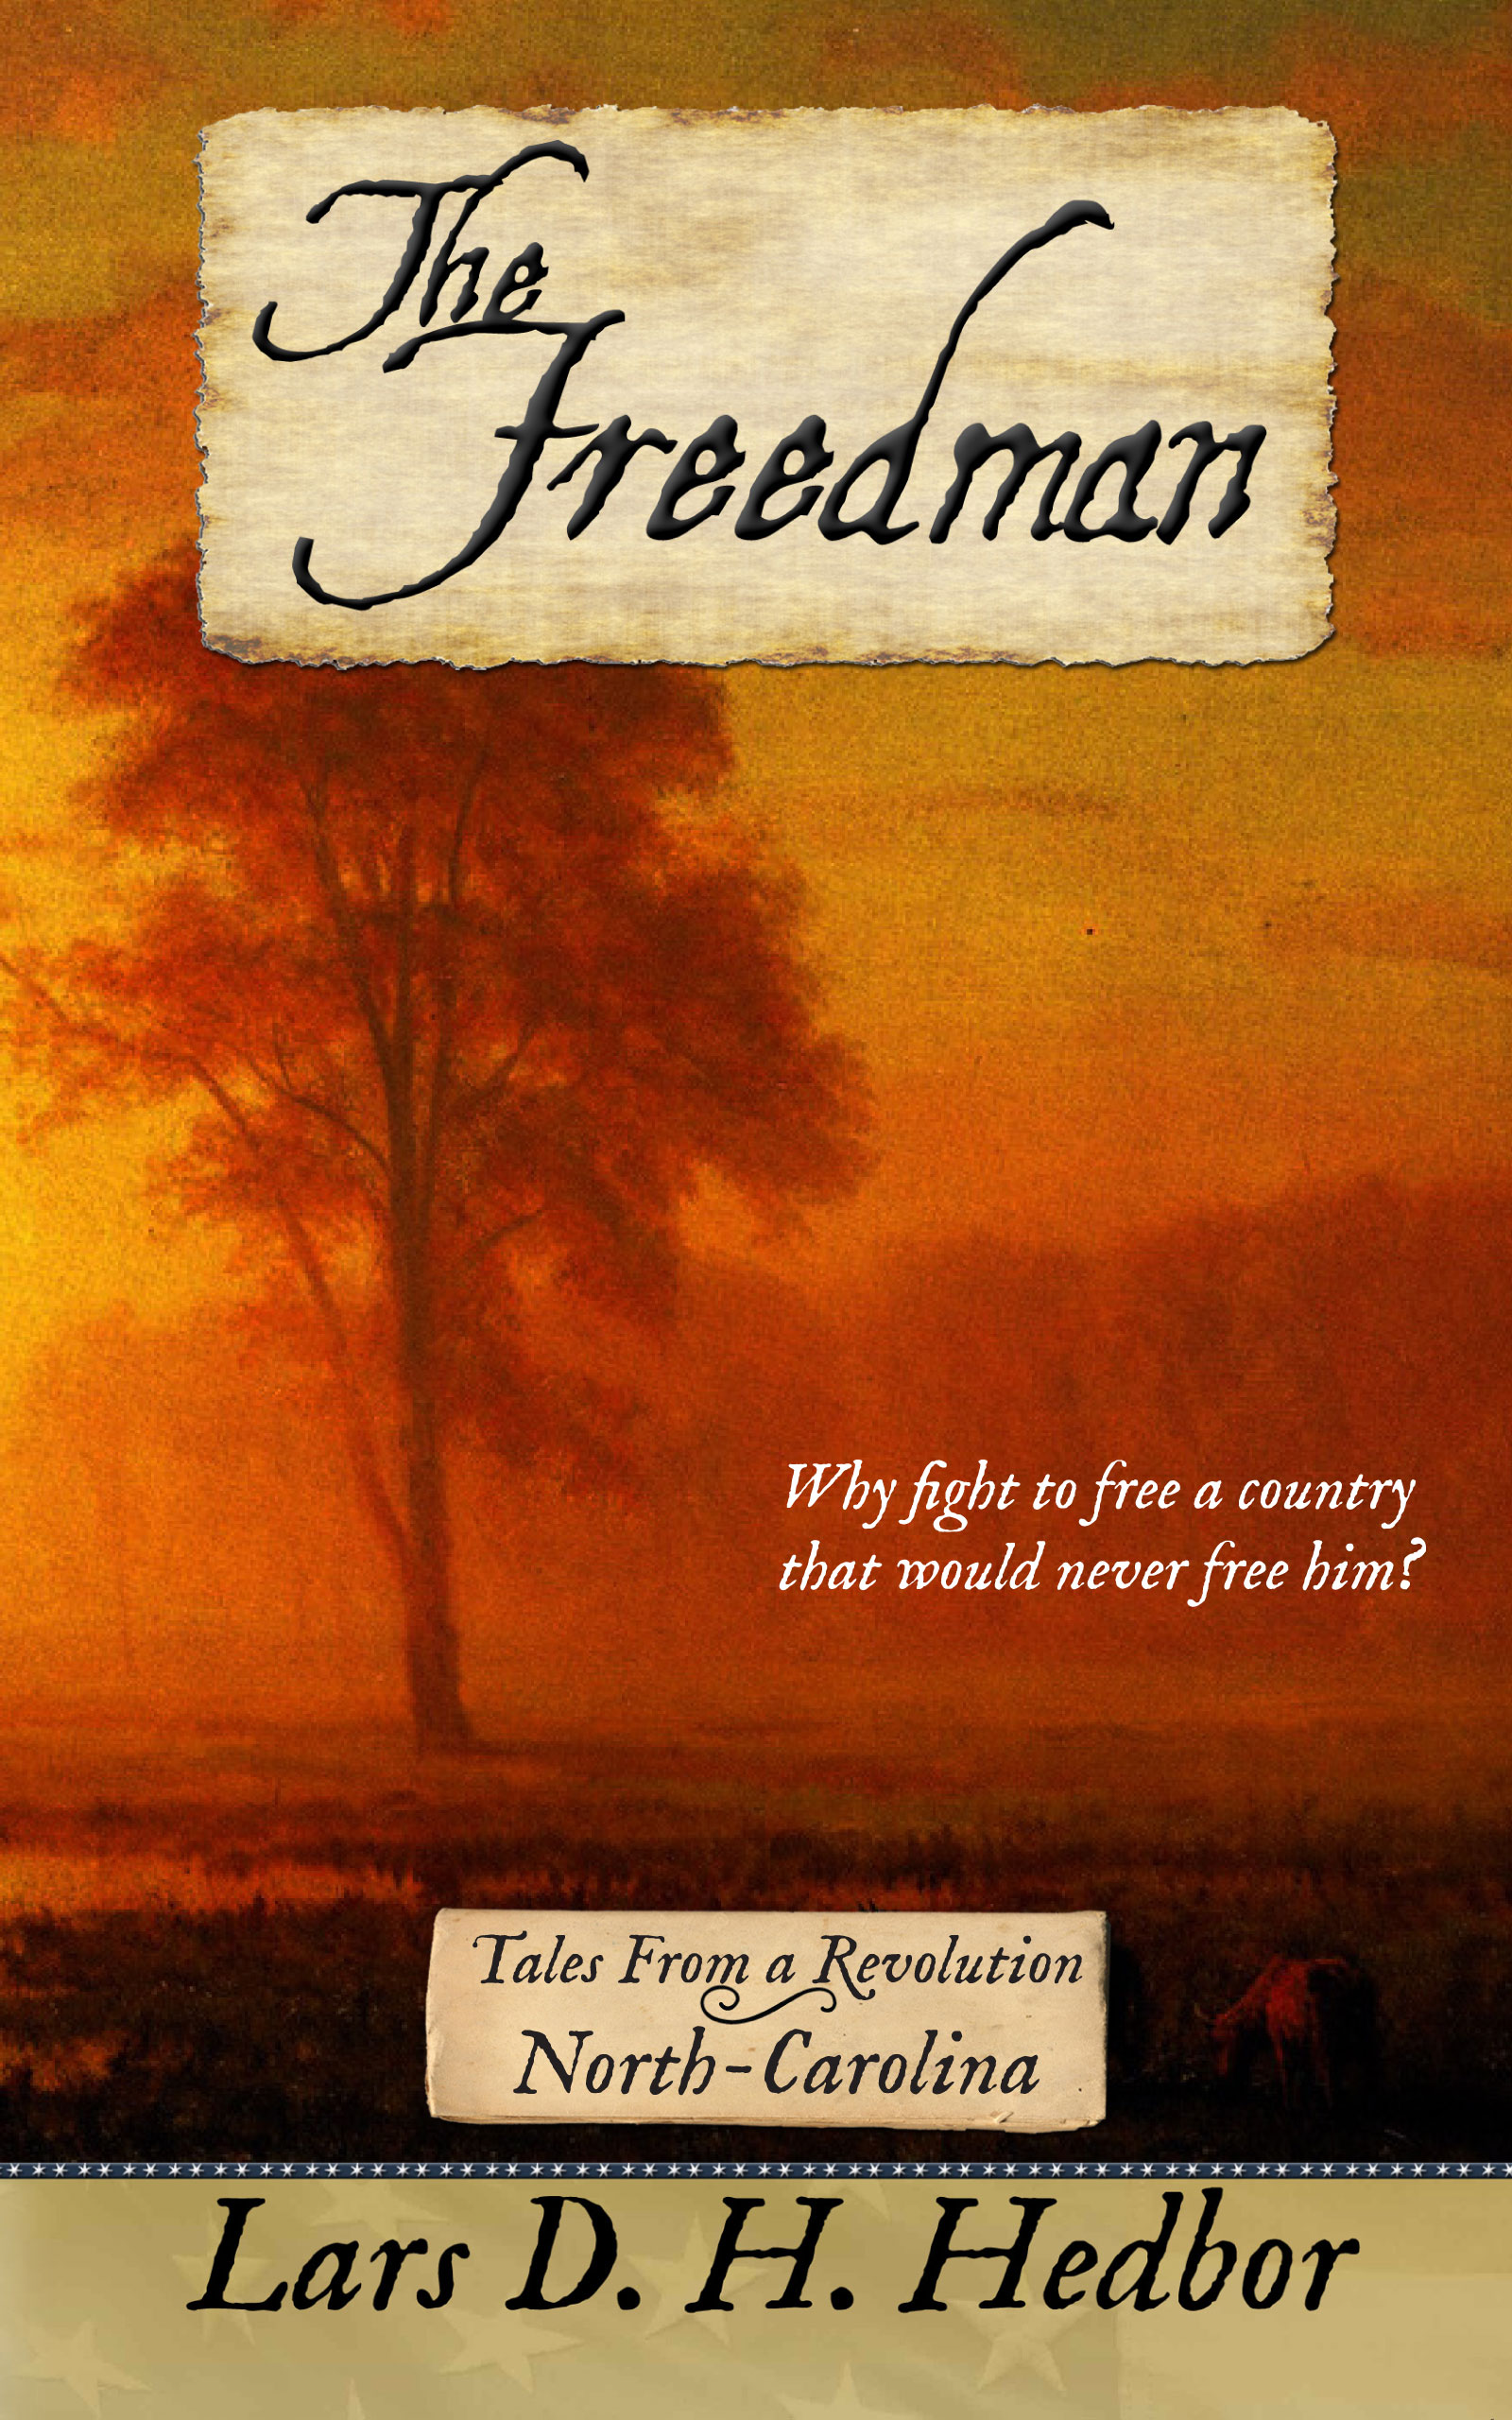 Cover image for The Freedman: Tales From a Revolution - North-Carolina